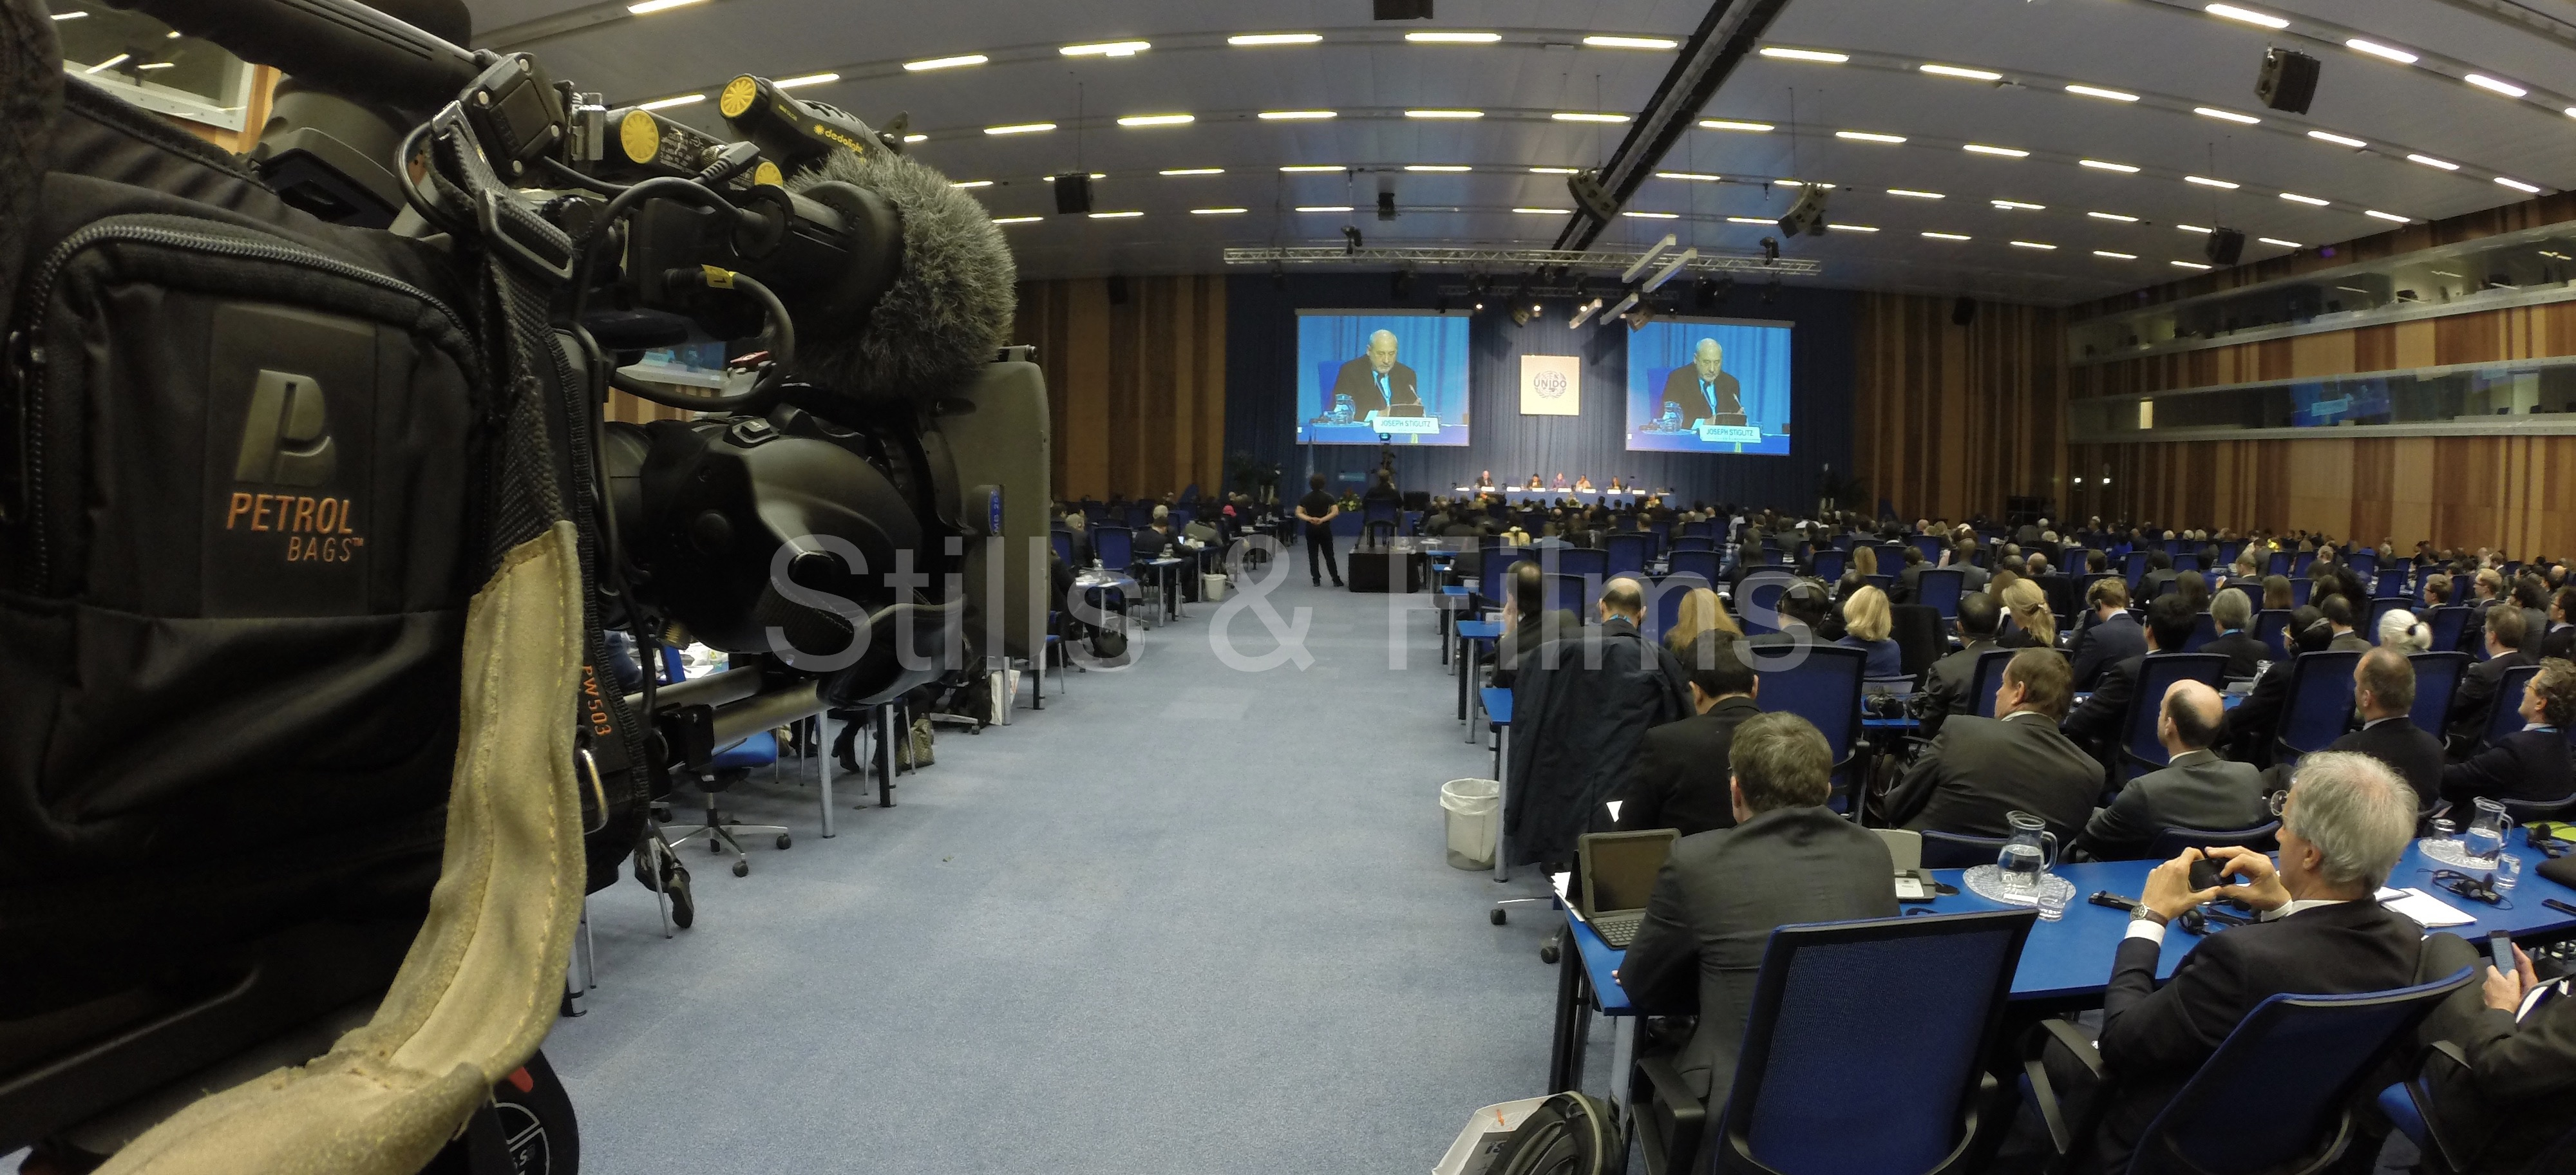 Camera crew Vienna filming keynote speech of Joseph Stiglitz at UNIDO conference